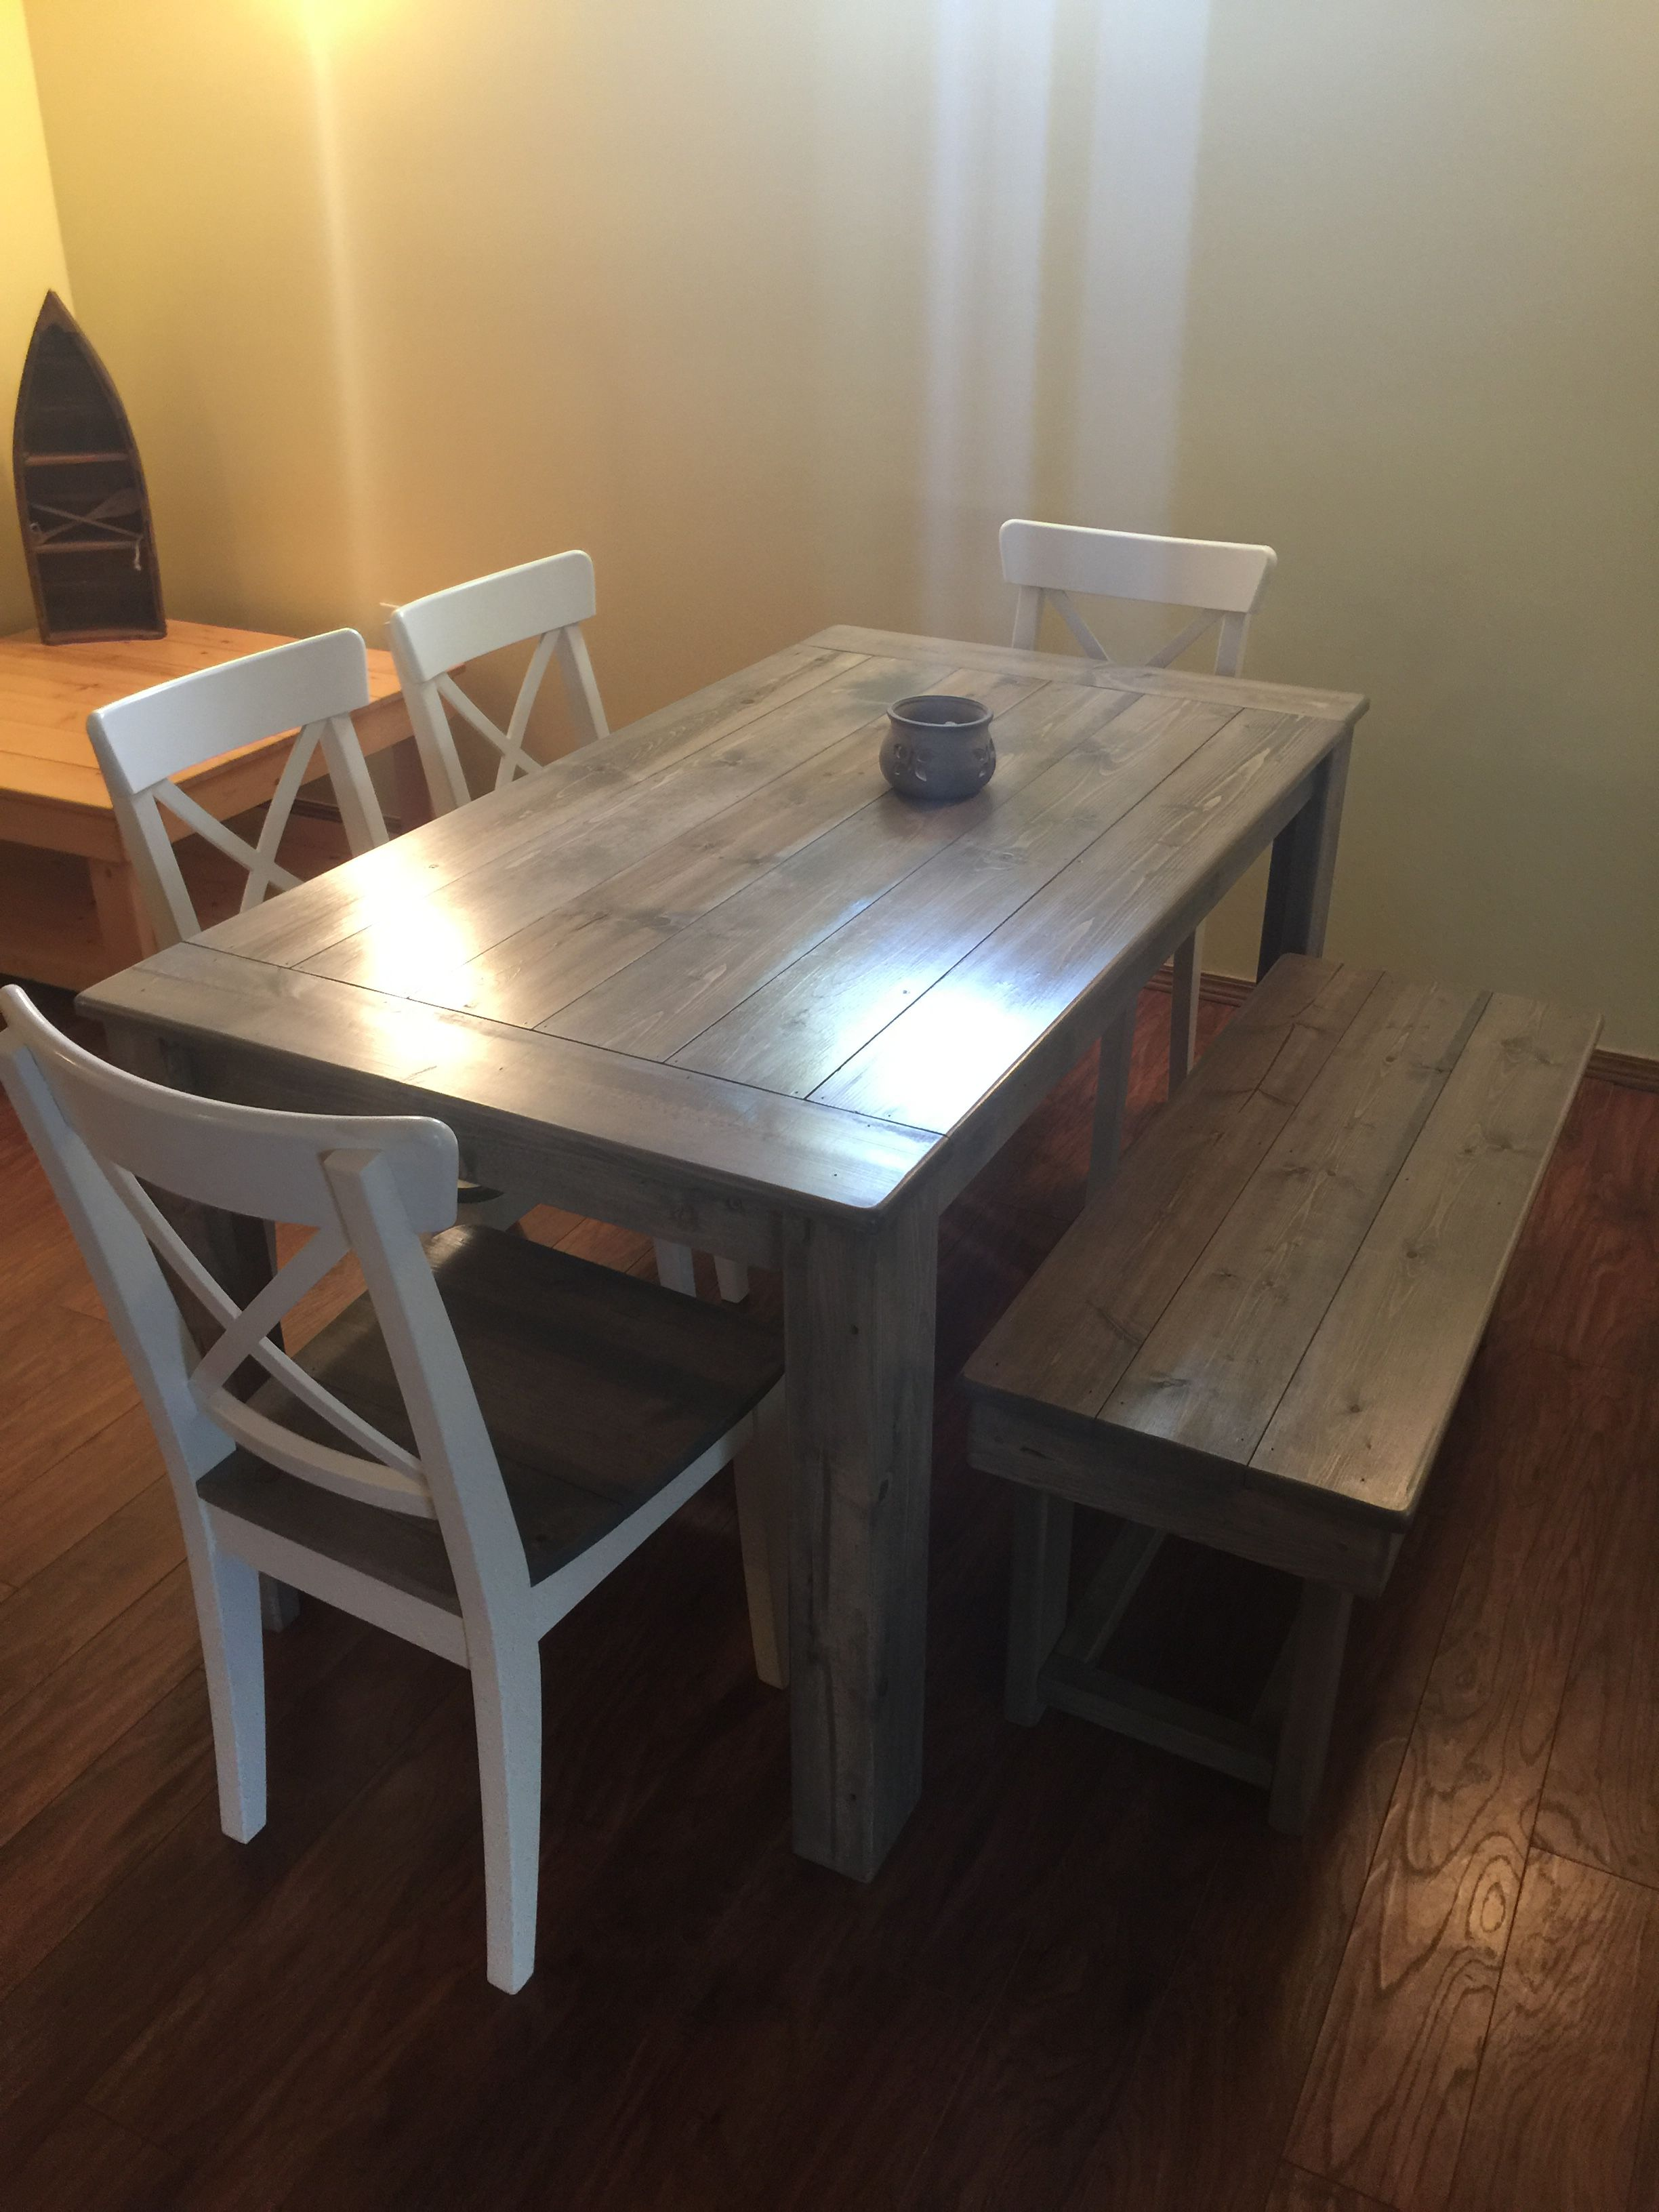 5ft Harvest Table And Chairs In The Special Grey Stain